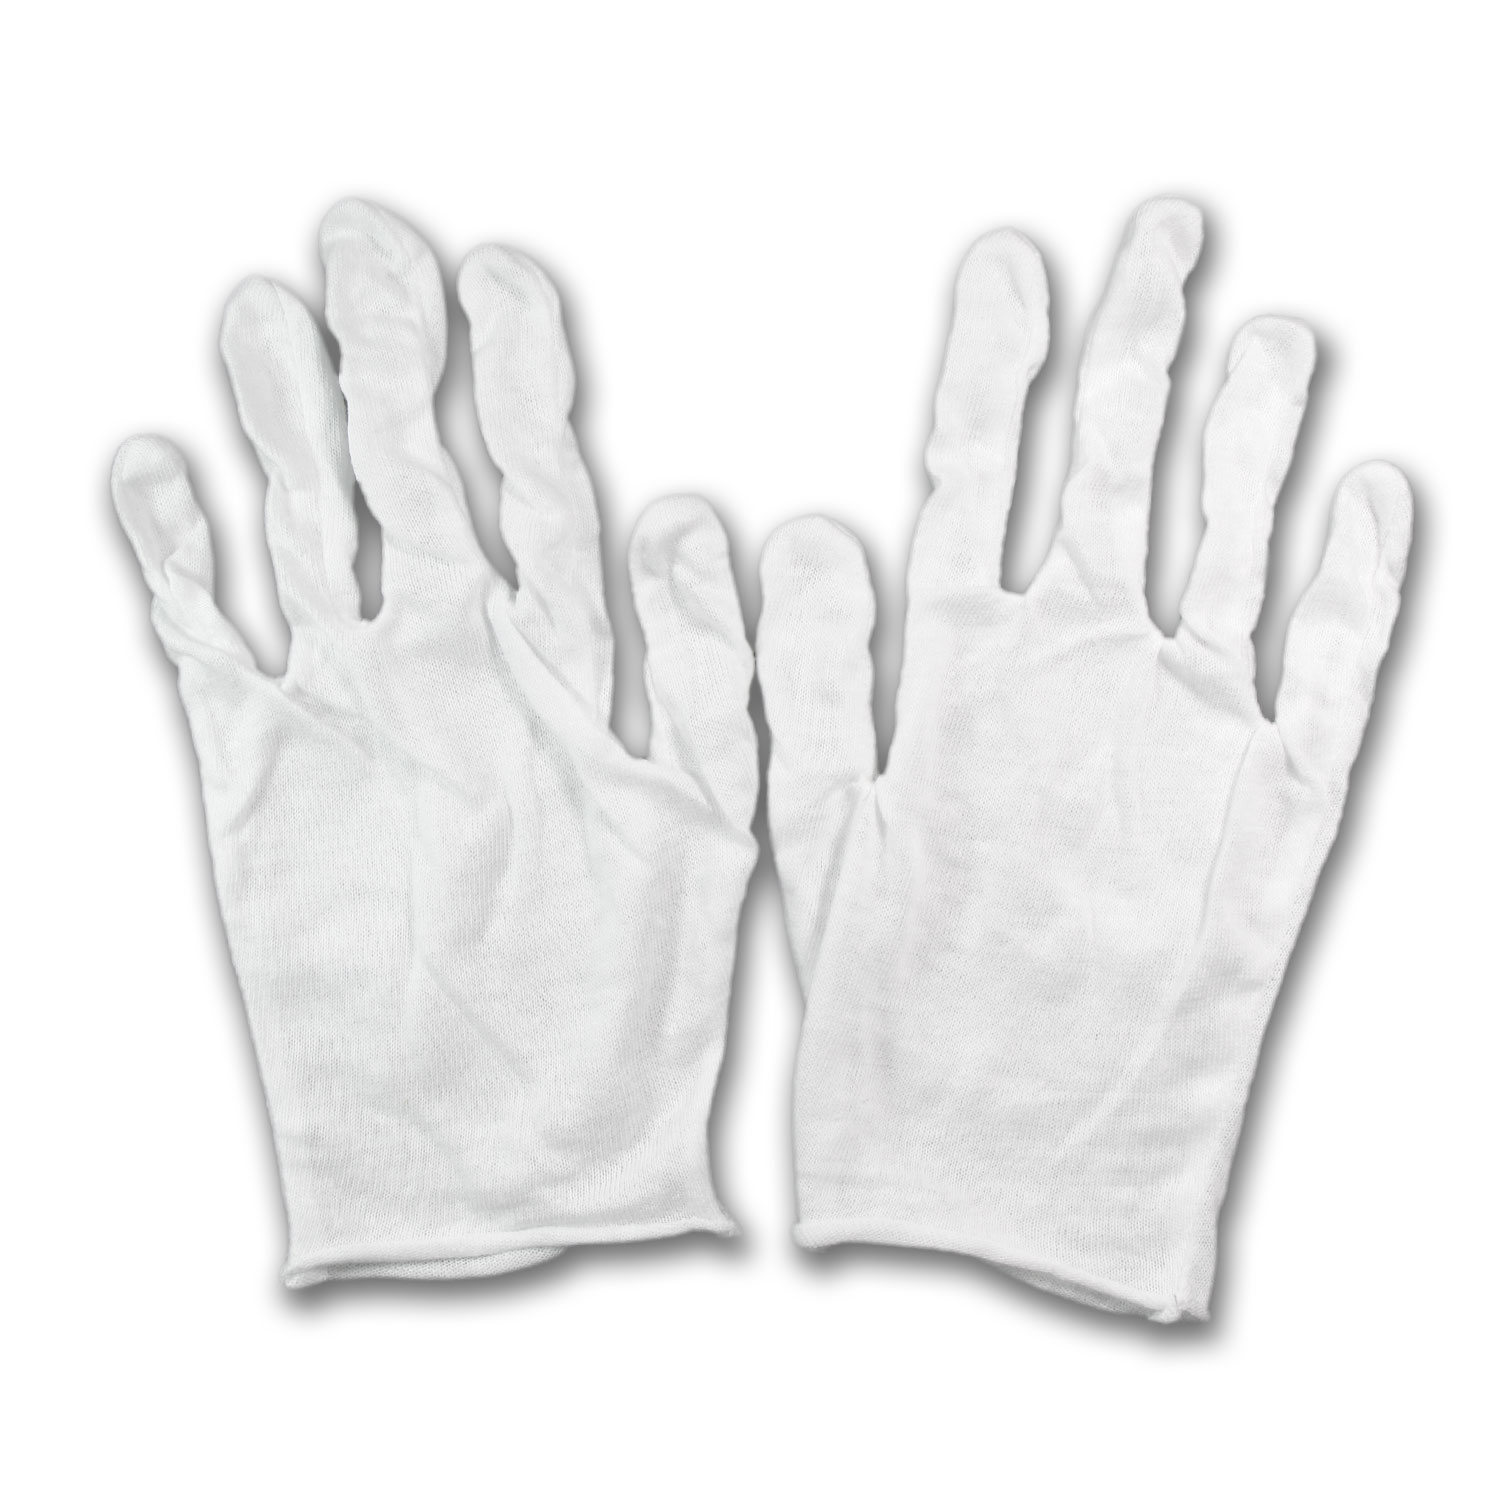 Cotton Glove - Large - 12 pack (6 Pairs)